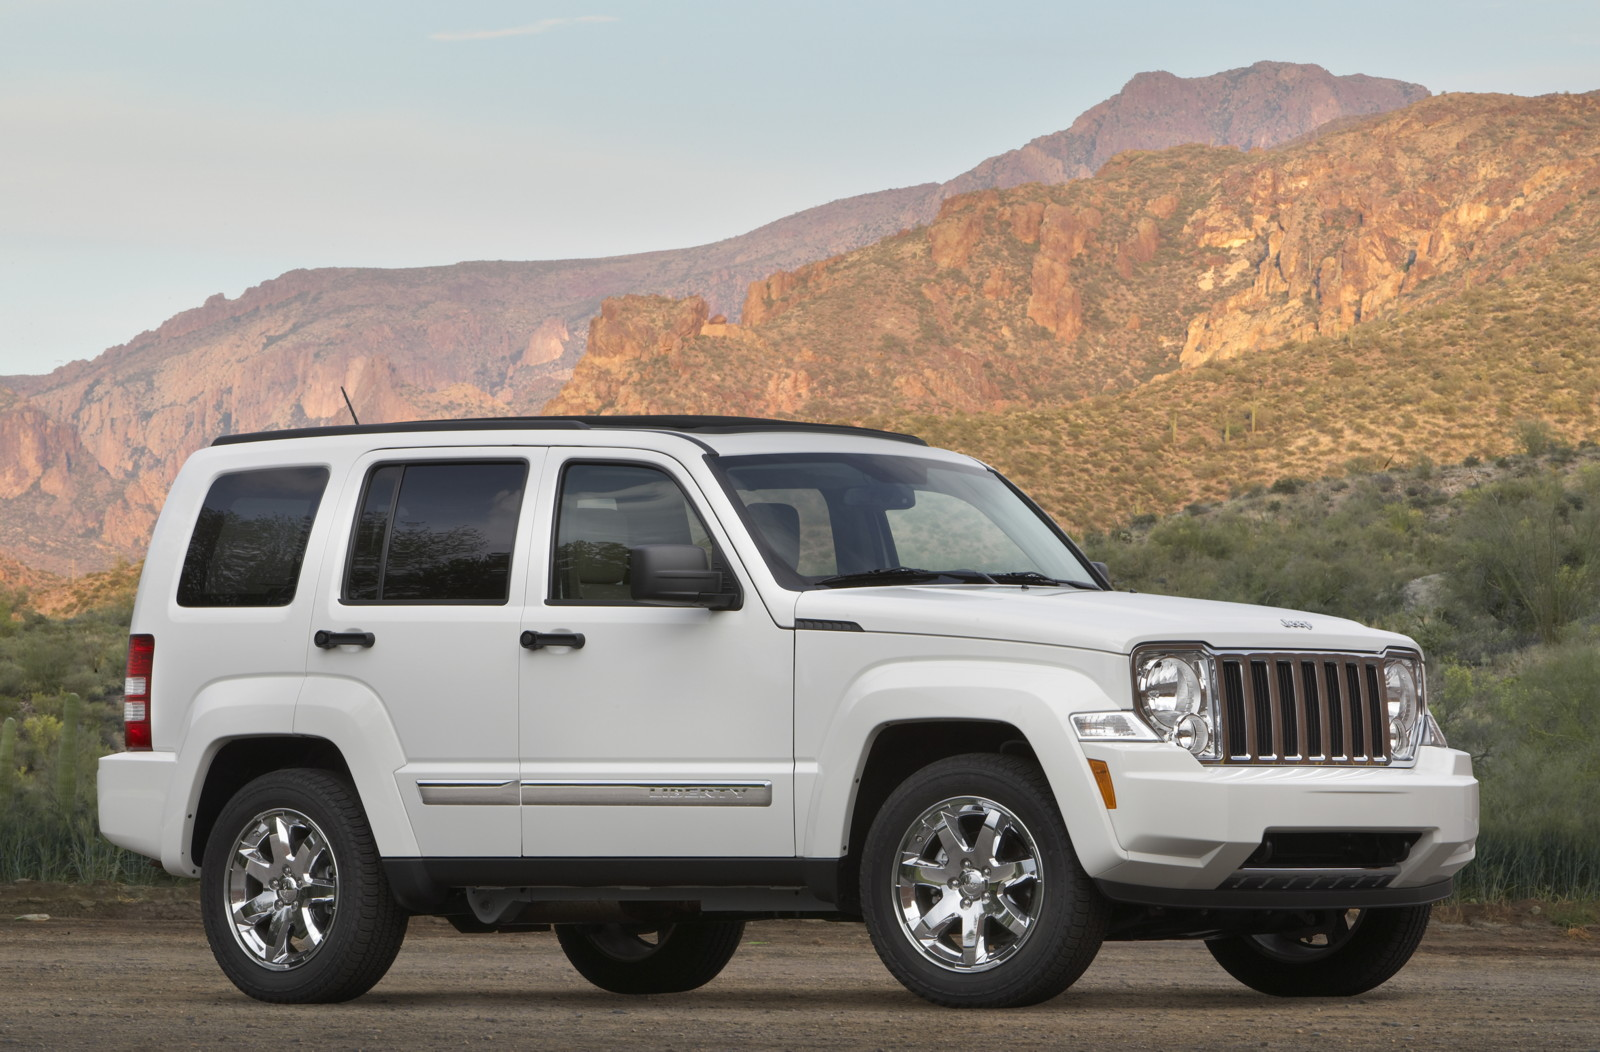 Jeep Liberty Mpg >> 2010 Jeep Liberty Review Ratings Specs Prices And Photos